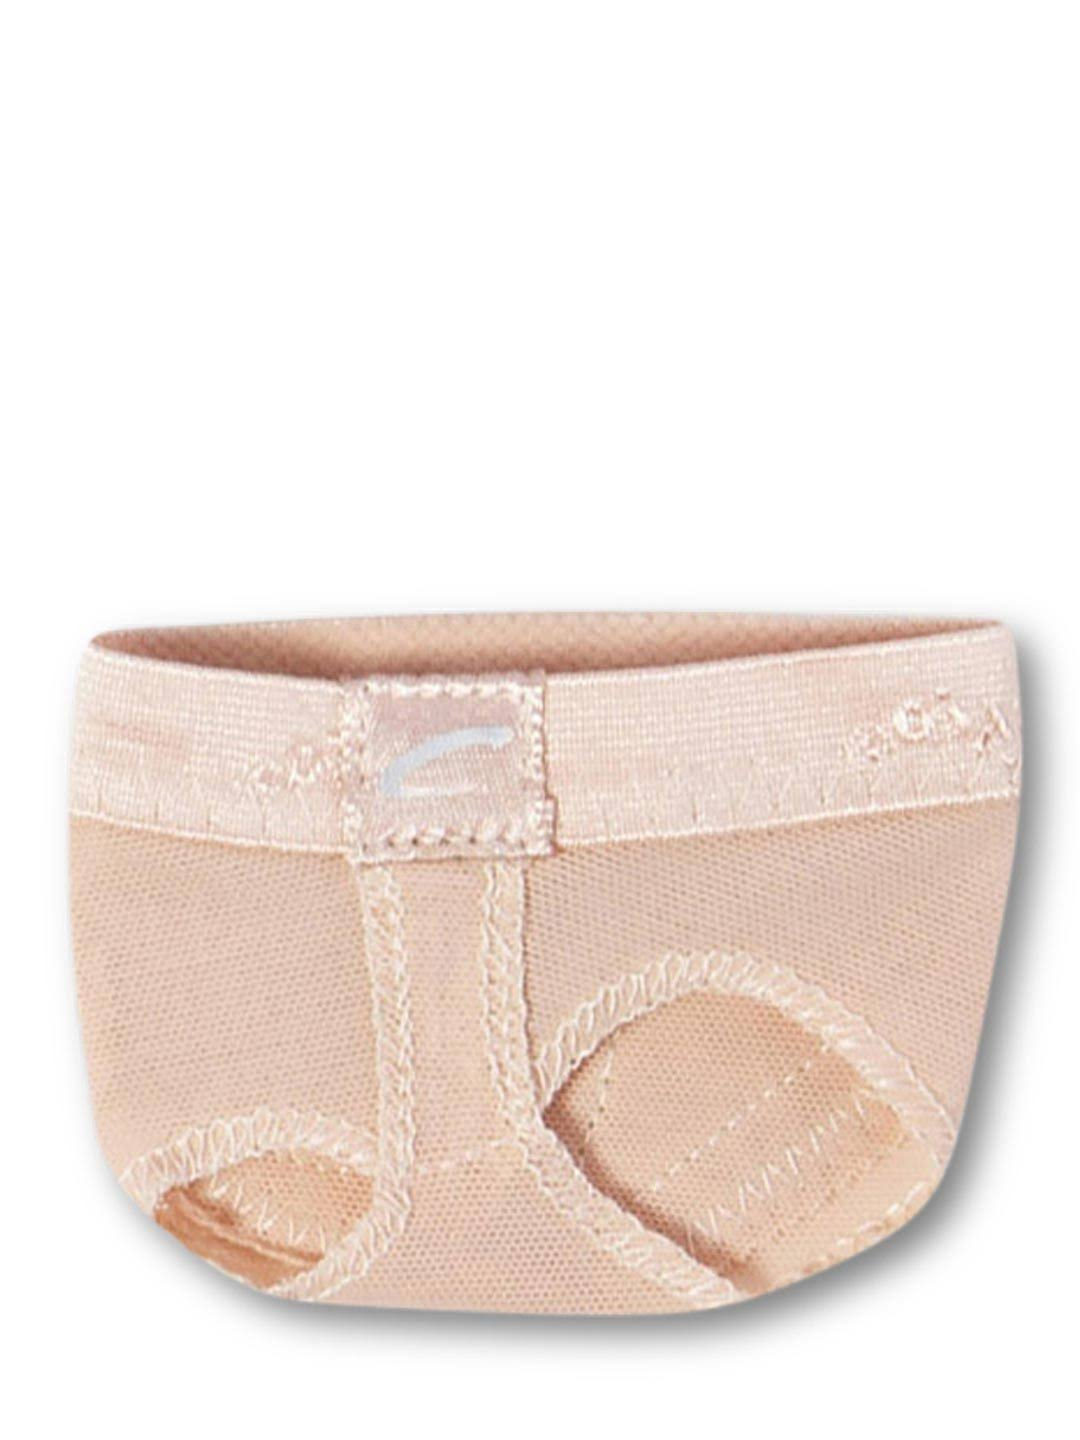 Capezio FootUndeez Ballet Foot Thong - Nude, US8-9